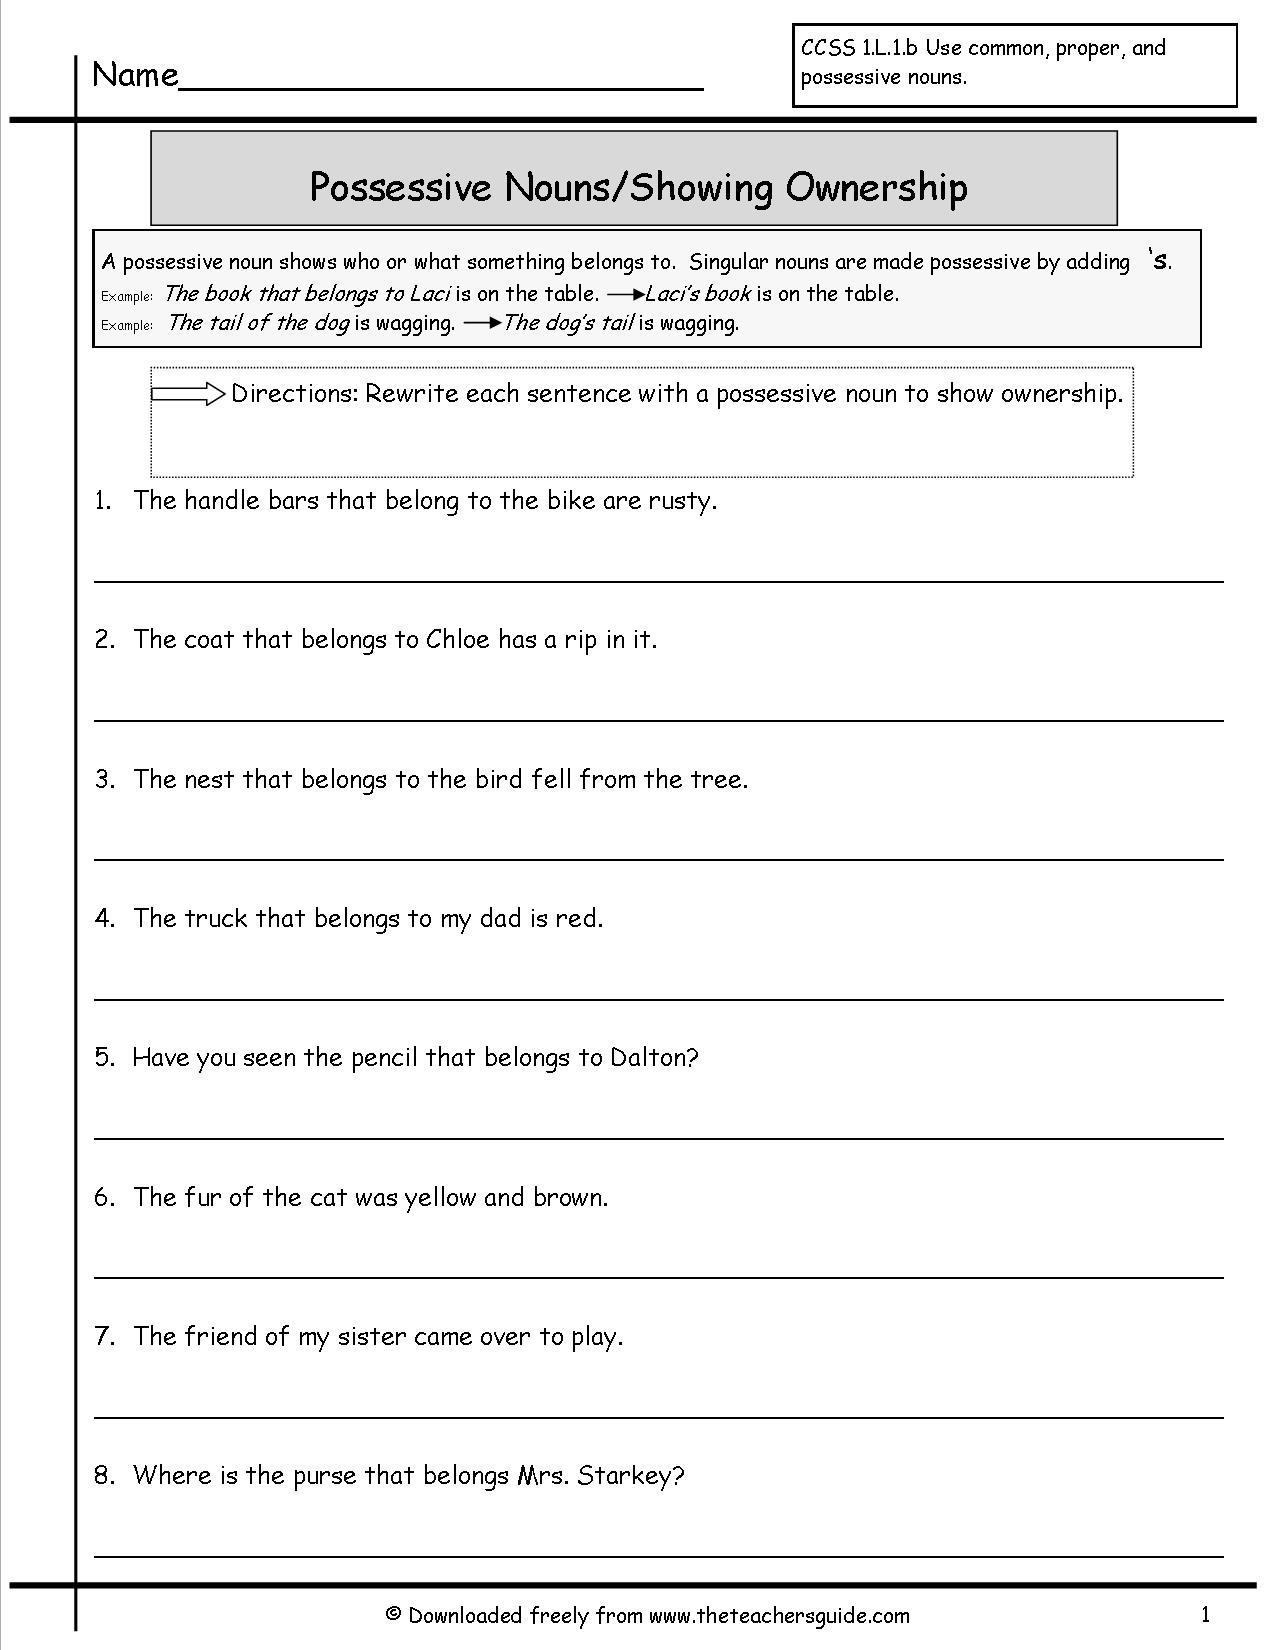 Possessive Pronoun Worksheet 3rd Grade Possessive Pronouns Worksheets 4th Grade